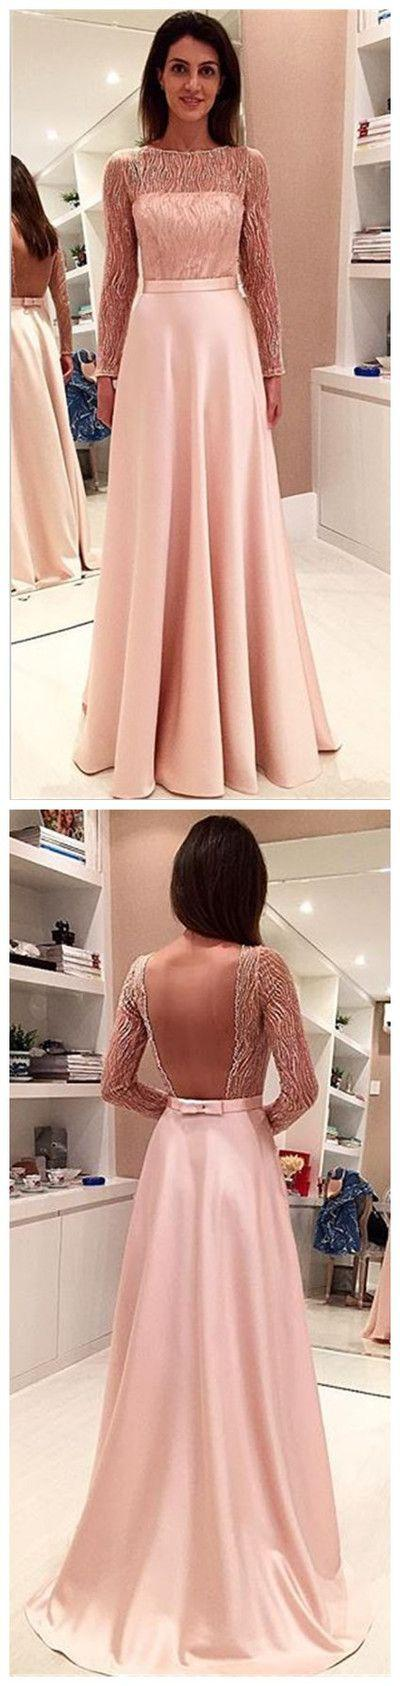 Wedding - Lace Backless Dress